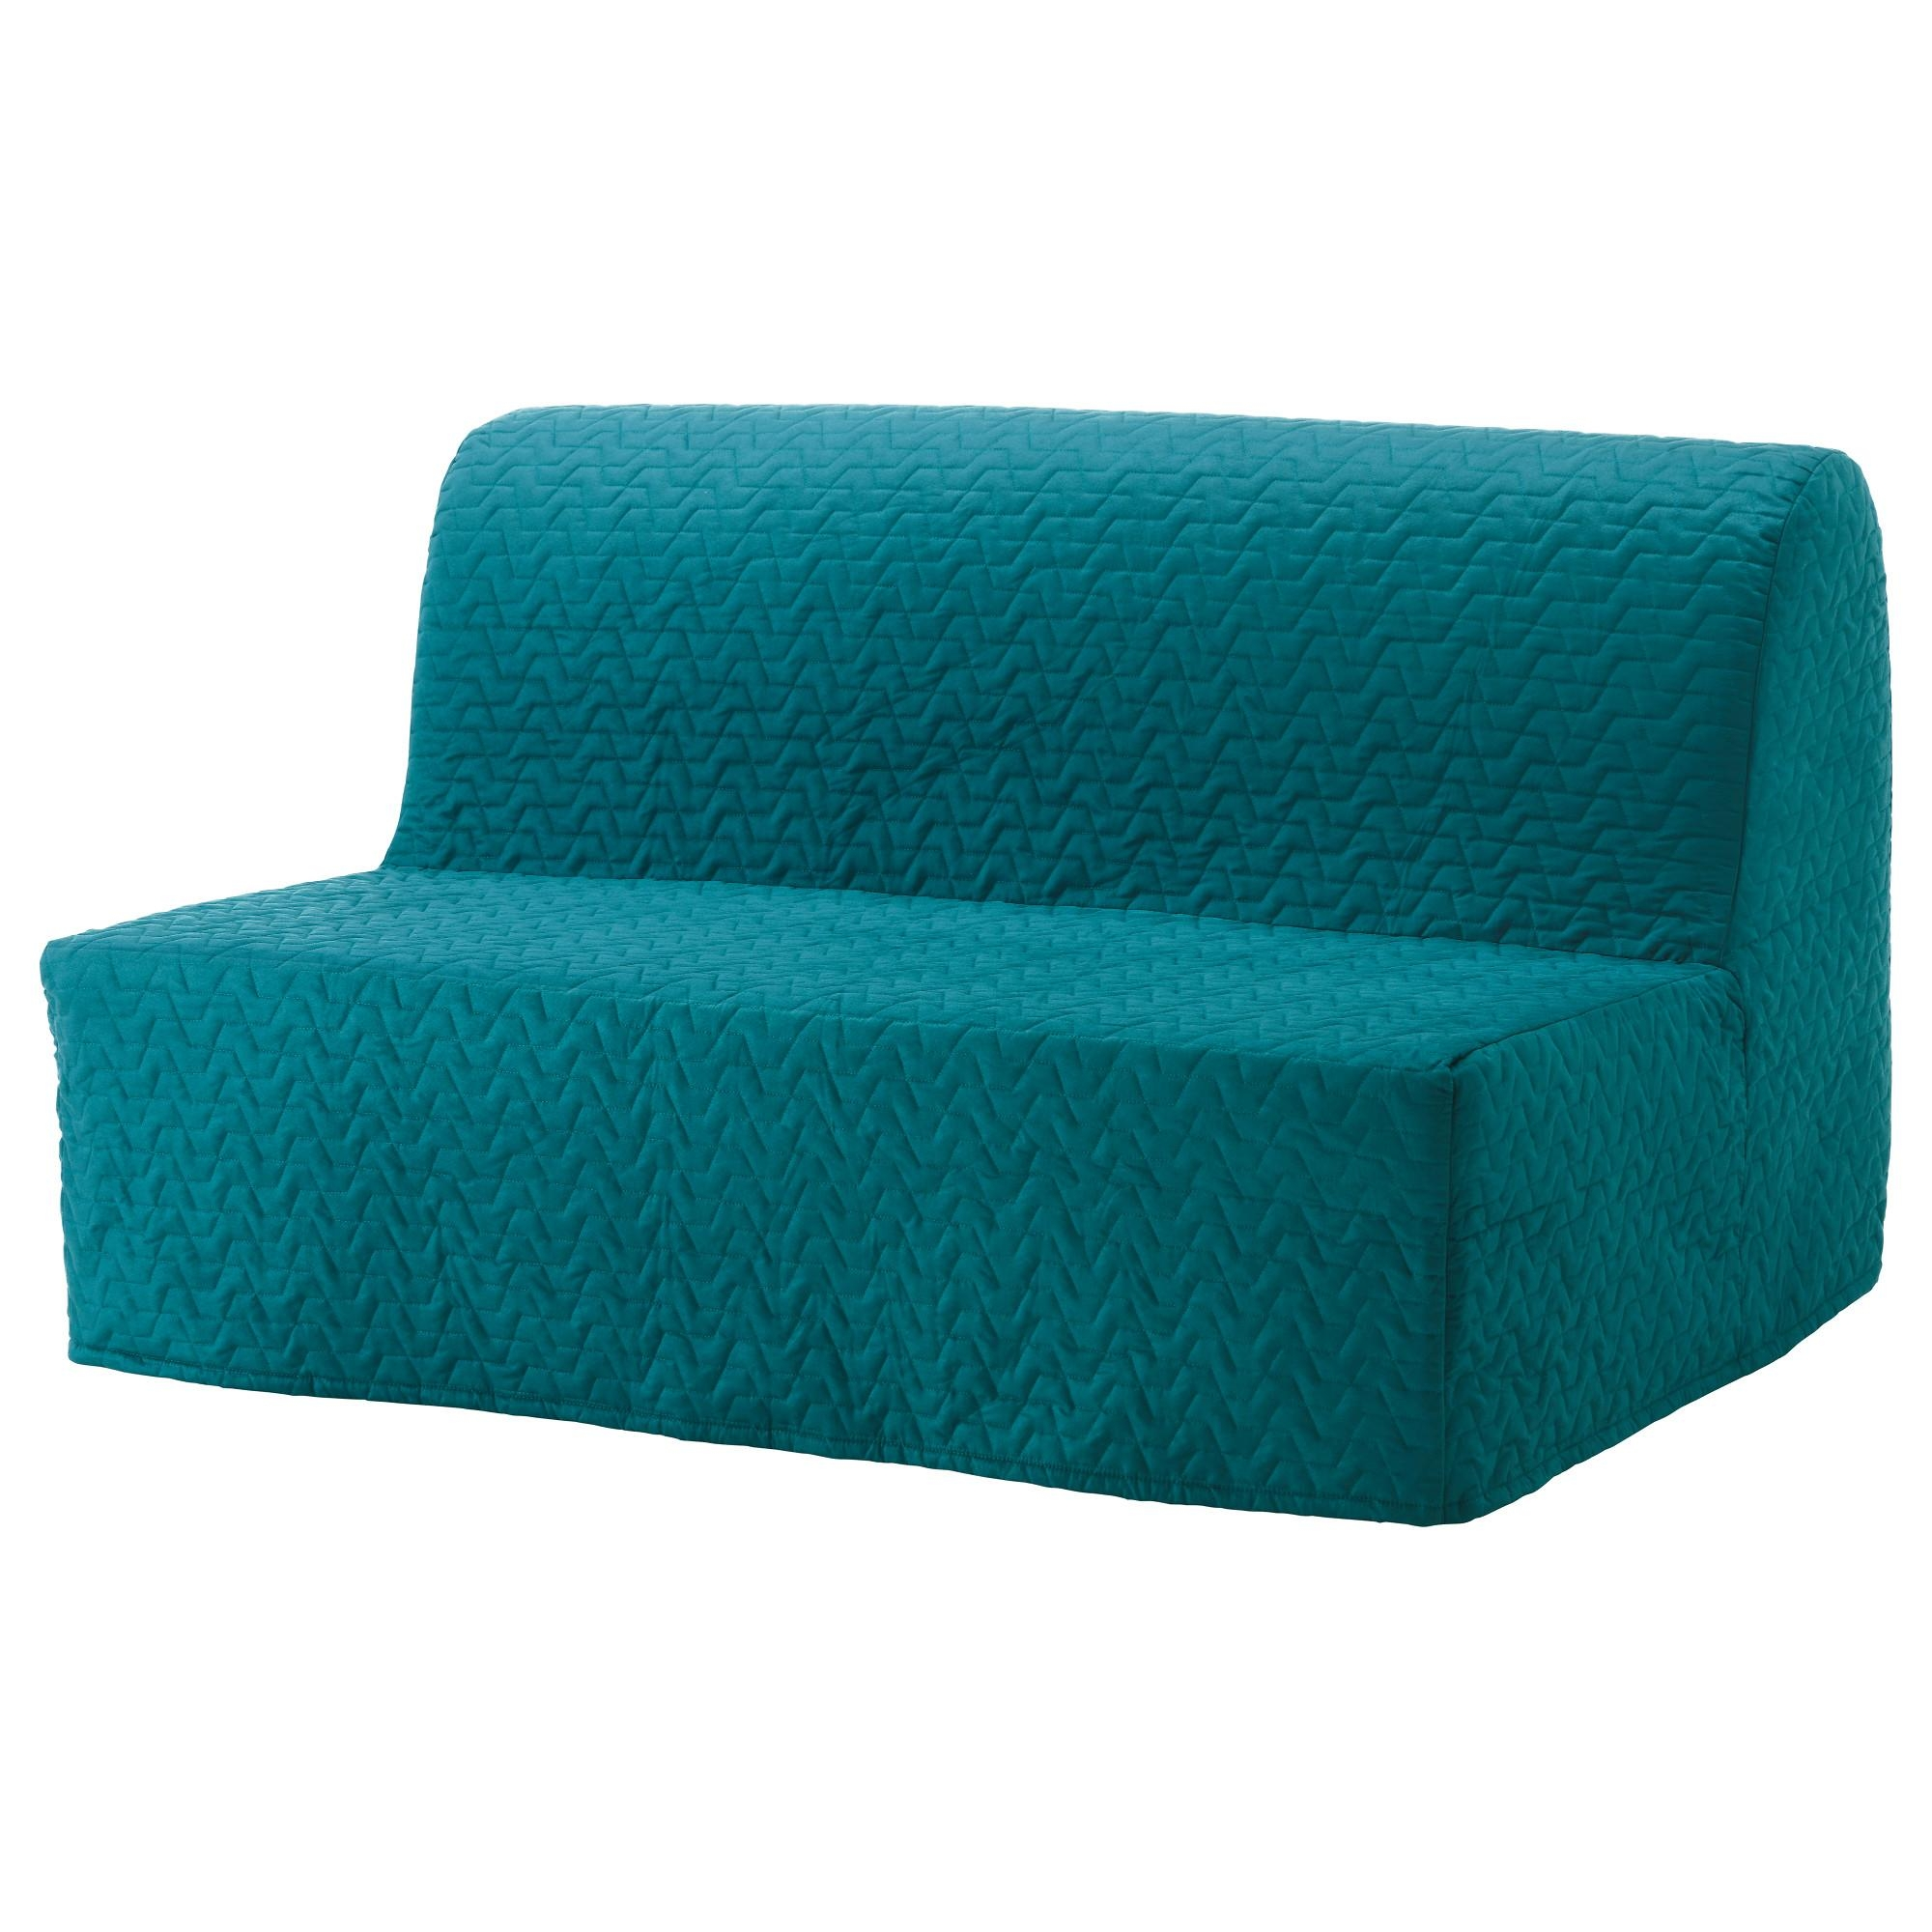 Furniture: Classy Ikea Couch Covers Design For Stylish Living Room With Turquoise Sofa Covers (View 14 of 20)